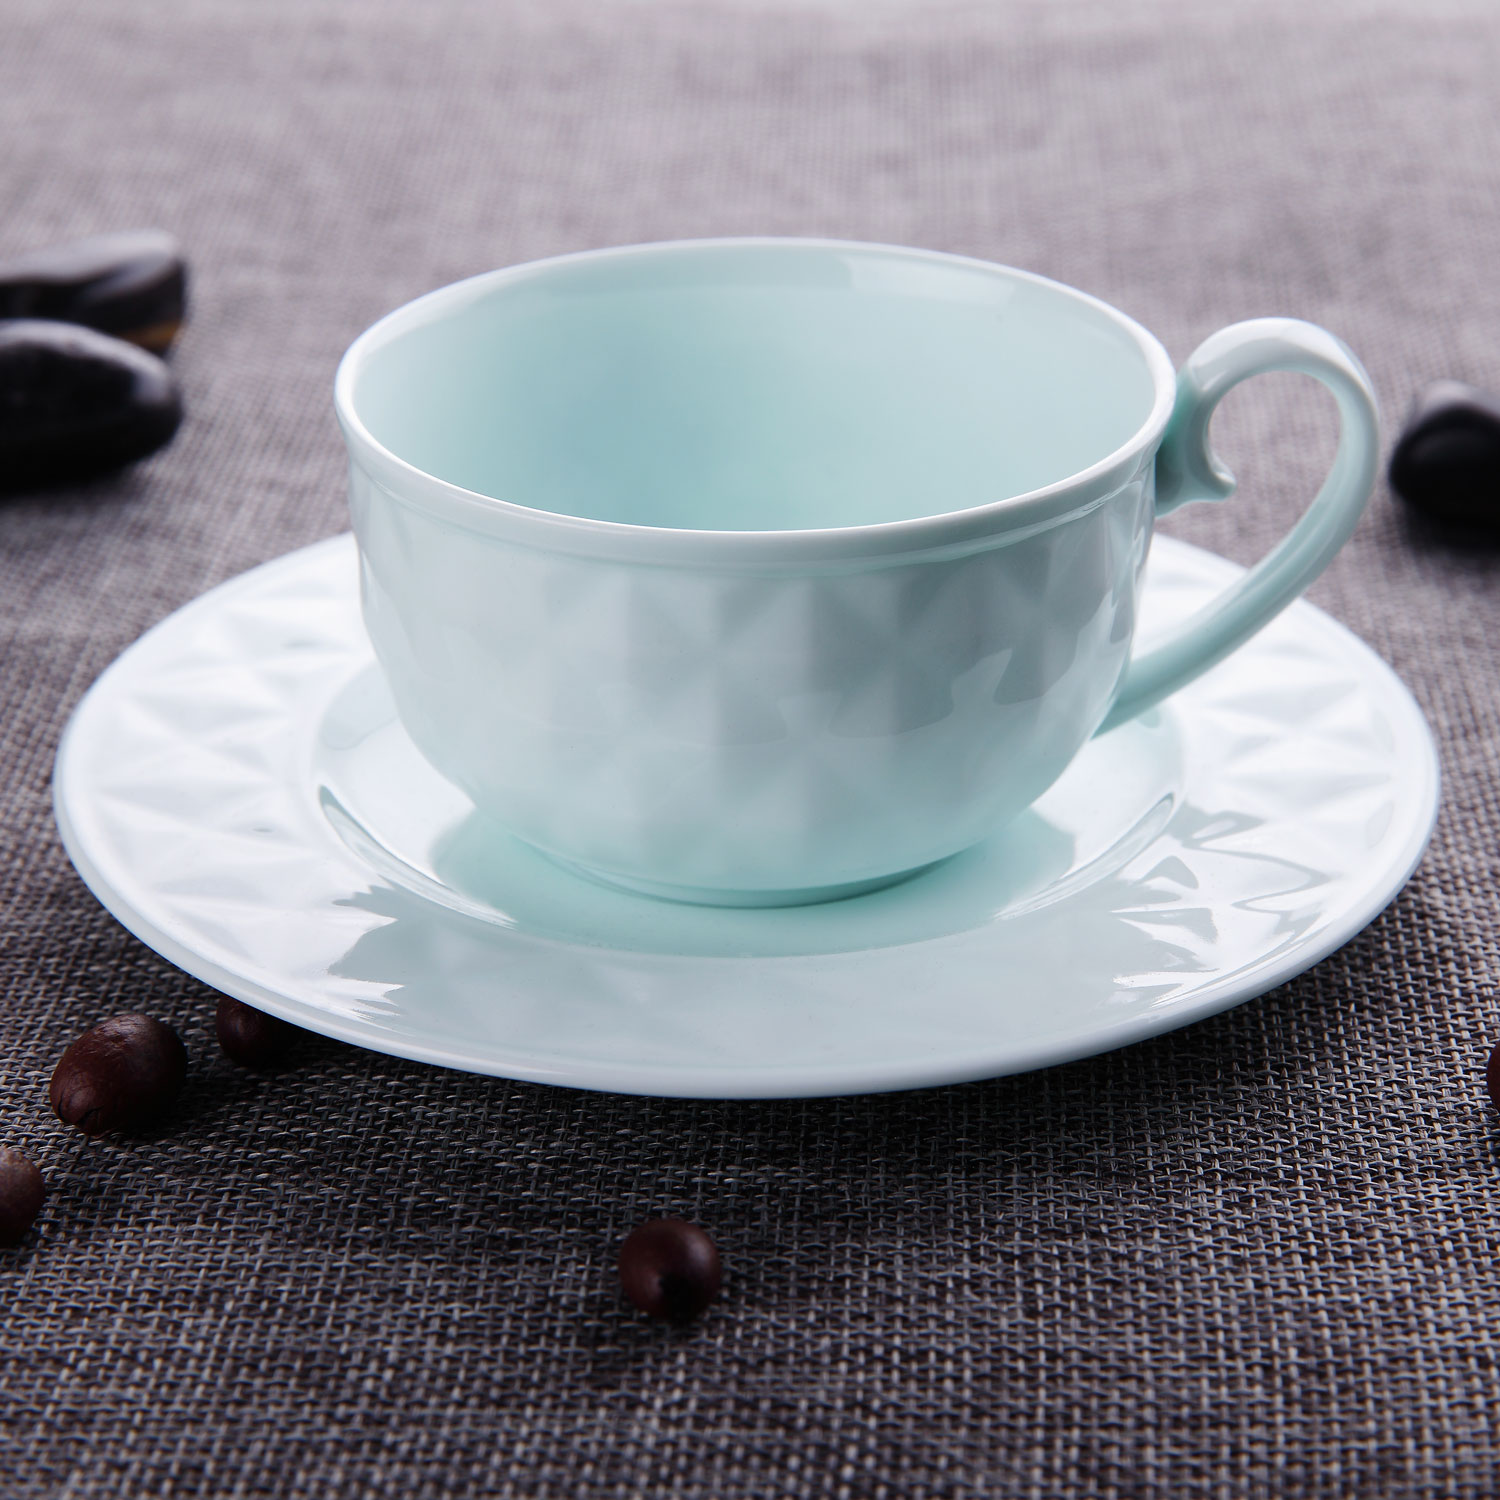 T4U-Cappuccino-Coffee-Cups-Set-Espresso-Cups-amp-Saucers-Set-Mug-White-Lightgreen